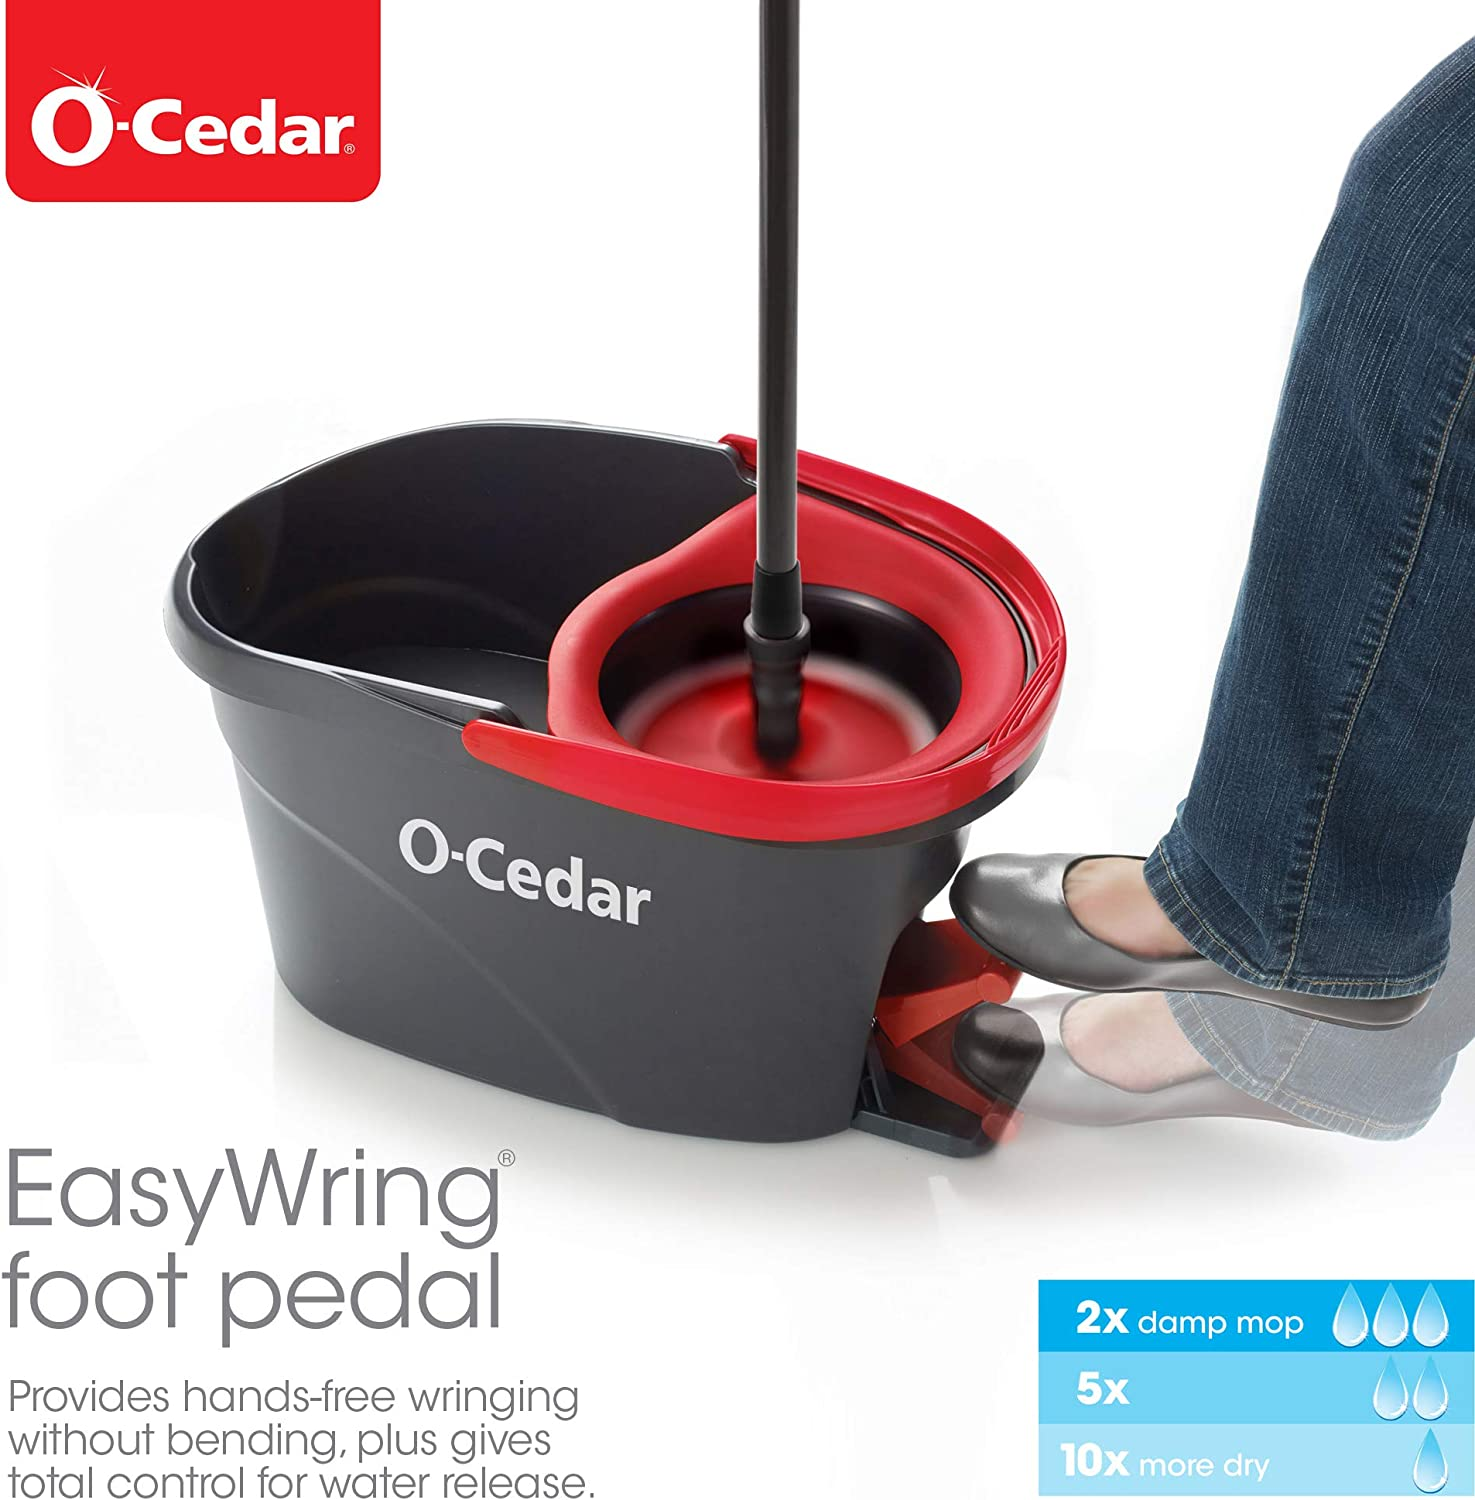 O-Cedar Easywring Microfiber Spin Mop & Bucket Floor Cleaning System with 3 Extra Refills: Home & Kitchen